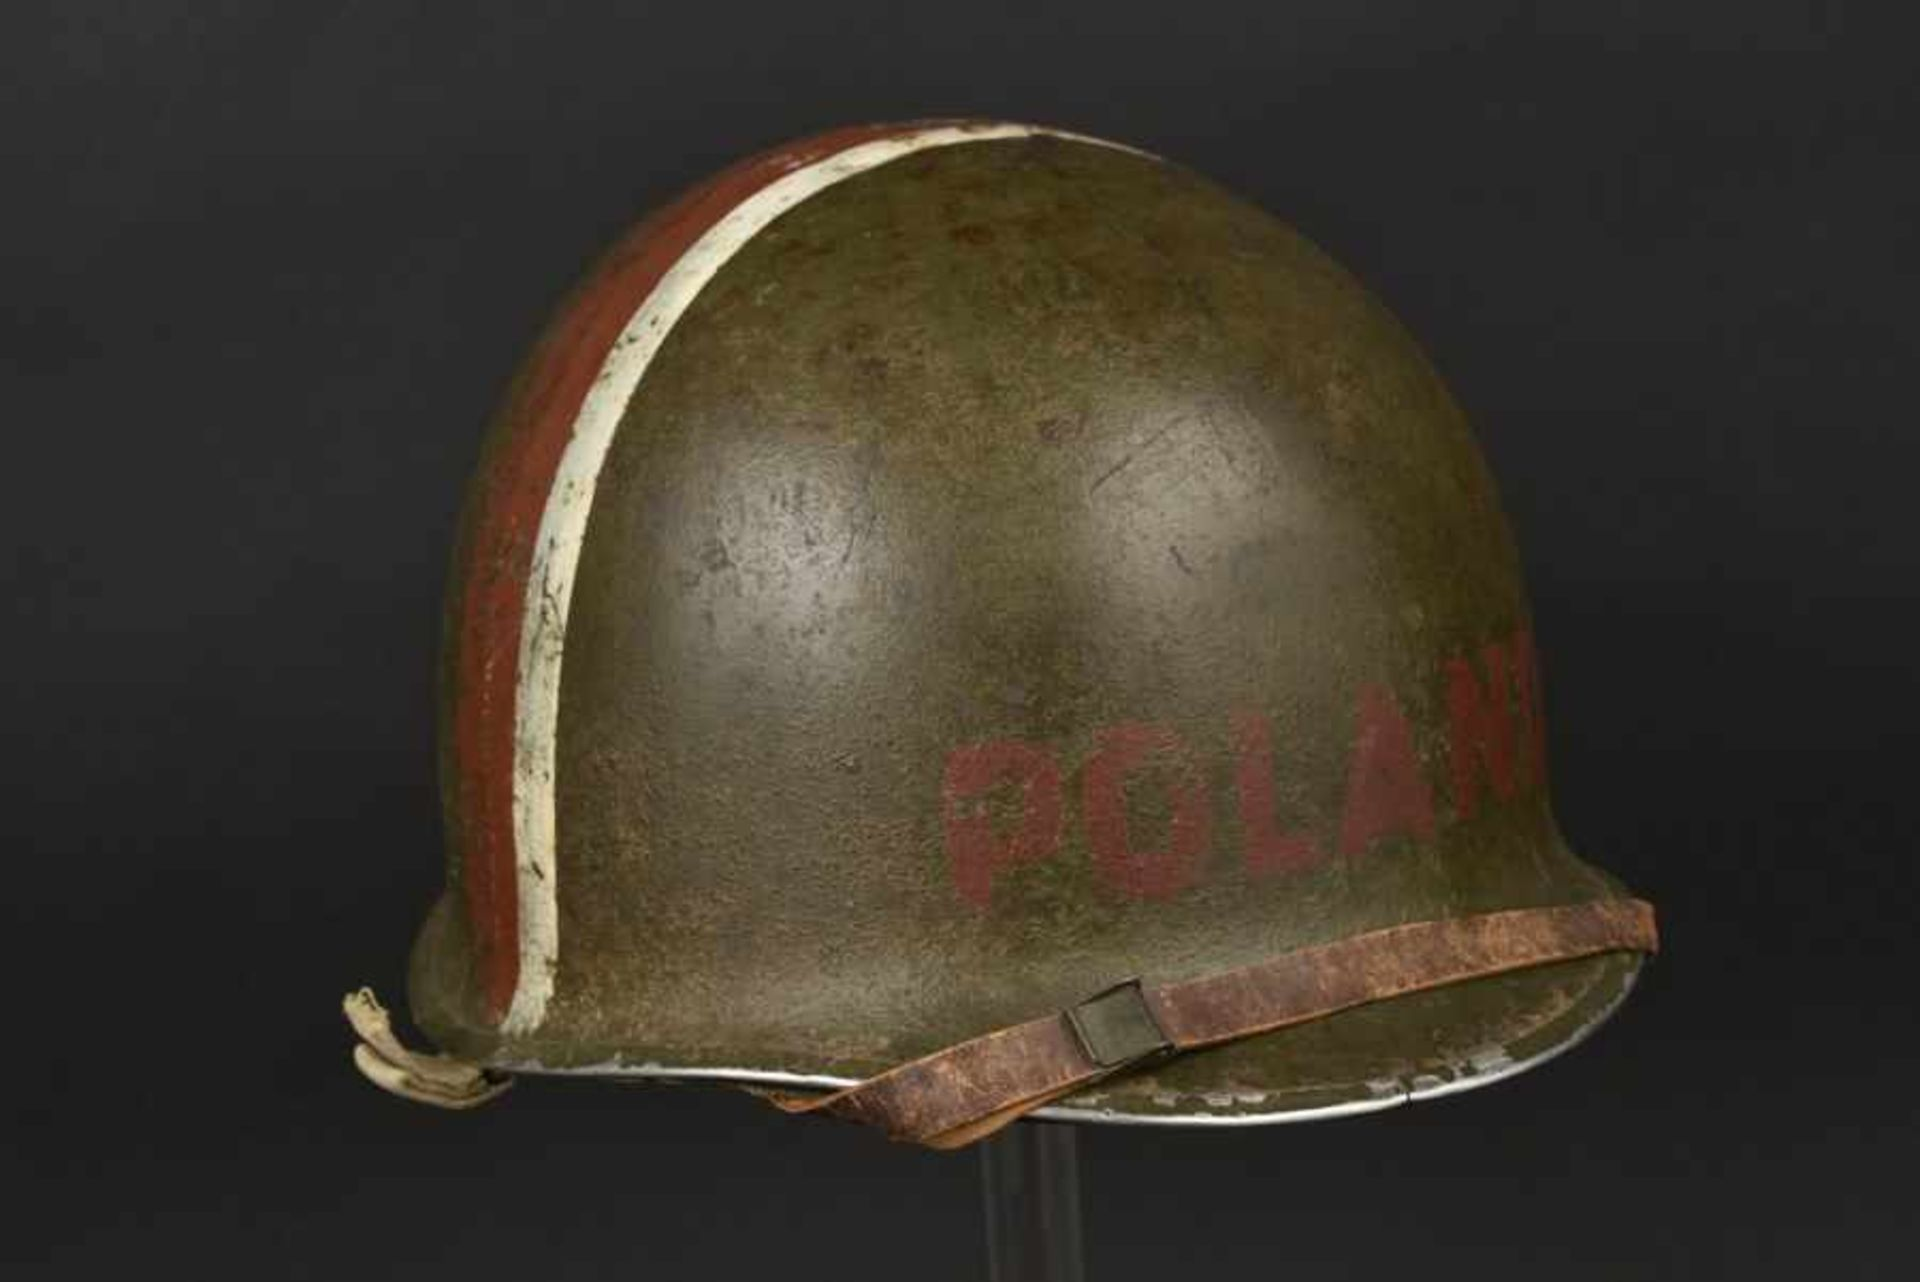 Casque d'un soldat américain d'origine polonaise. Helmet of an American soldier of Polish